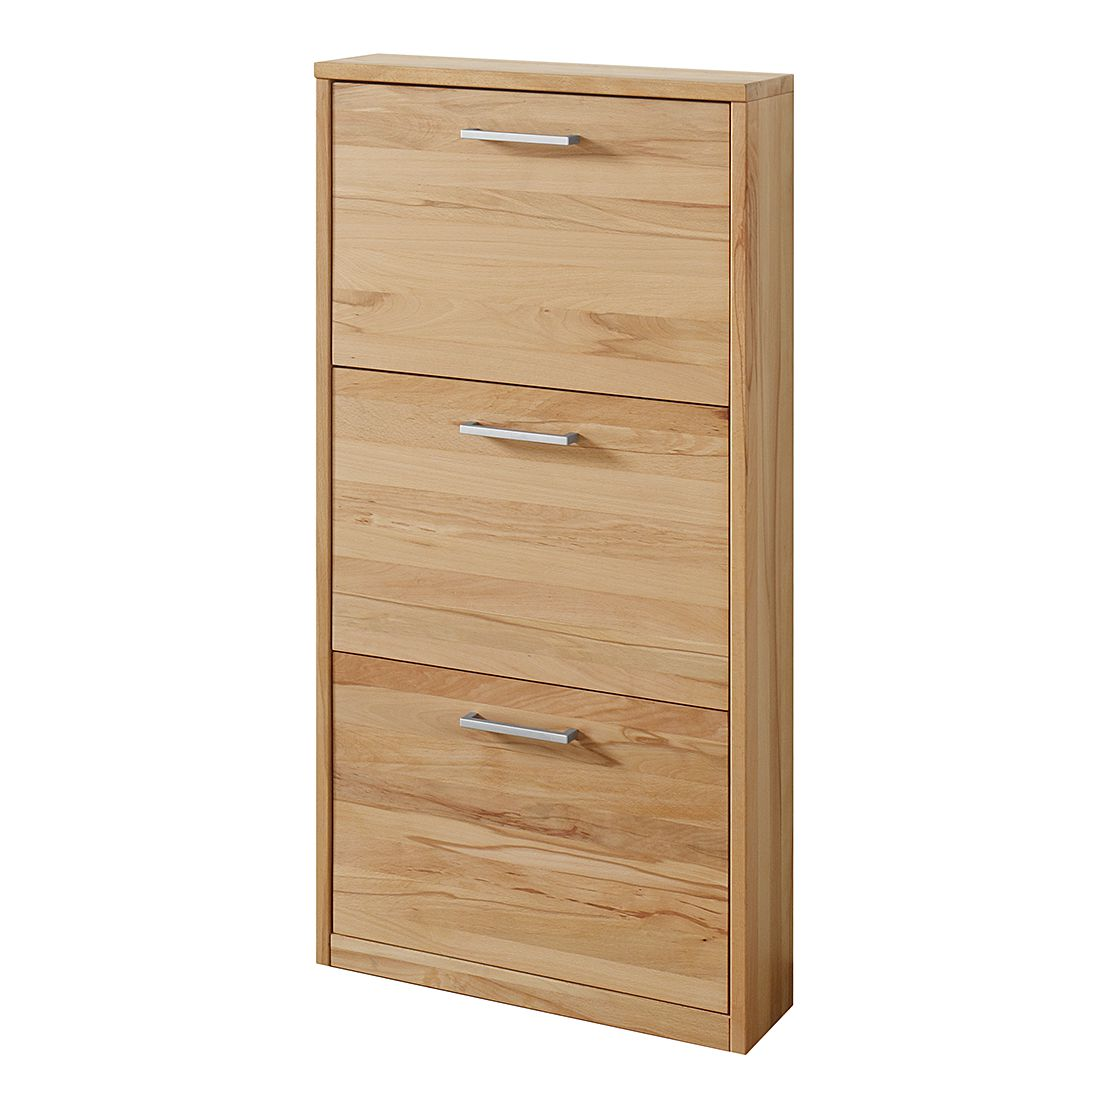 schuhschrank woodfull i kernbuche massiv ge lt schuhschrank woodfull i 3 klappen. Black Bedroom Furniture Sets. Home Design Ideas